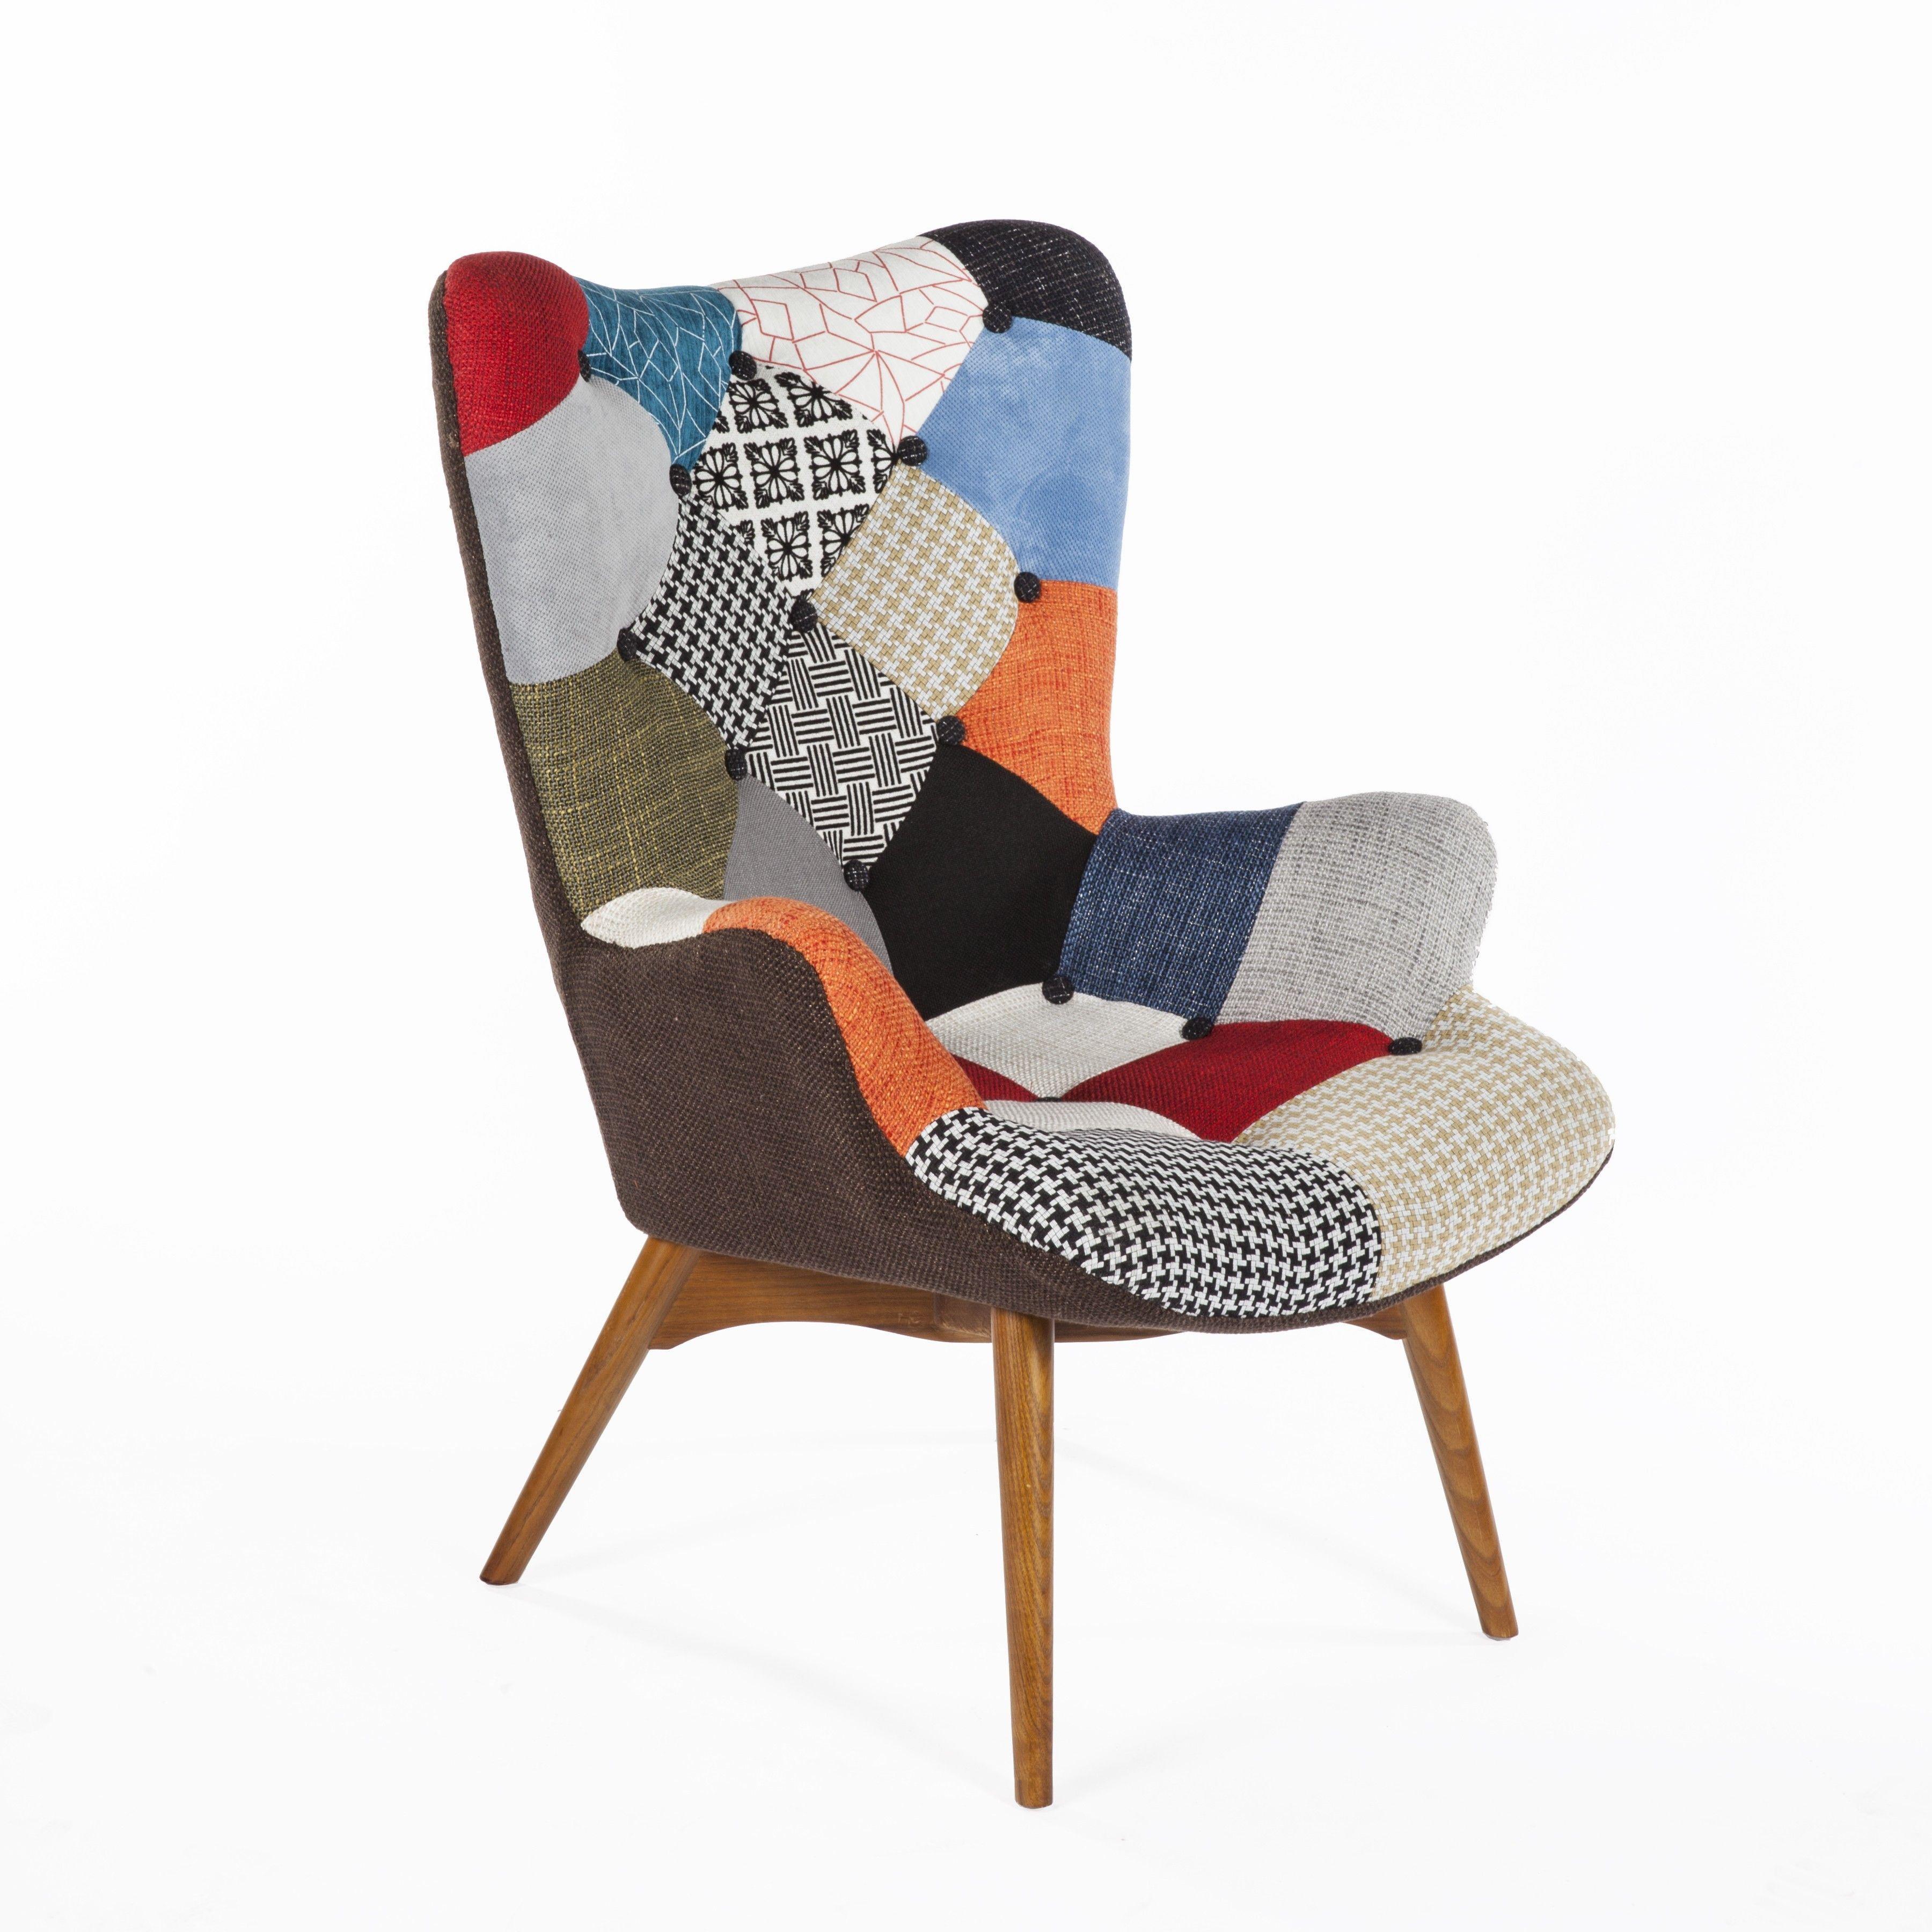 Contour lounge chair in multicolored patchwork contour lounge chair in multicolored patchwork modern